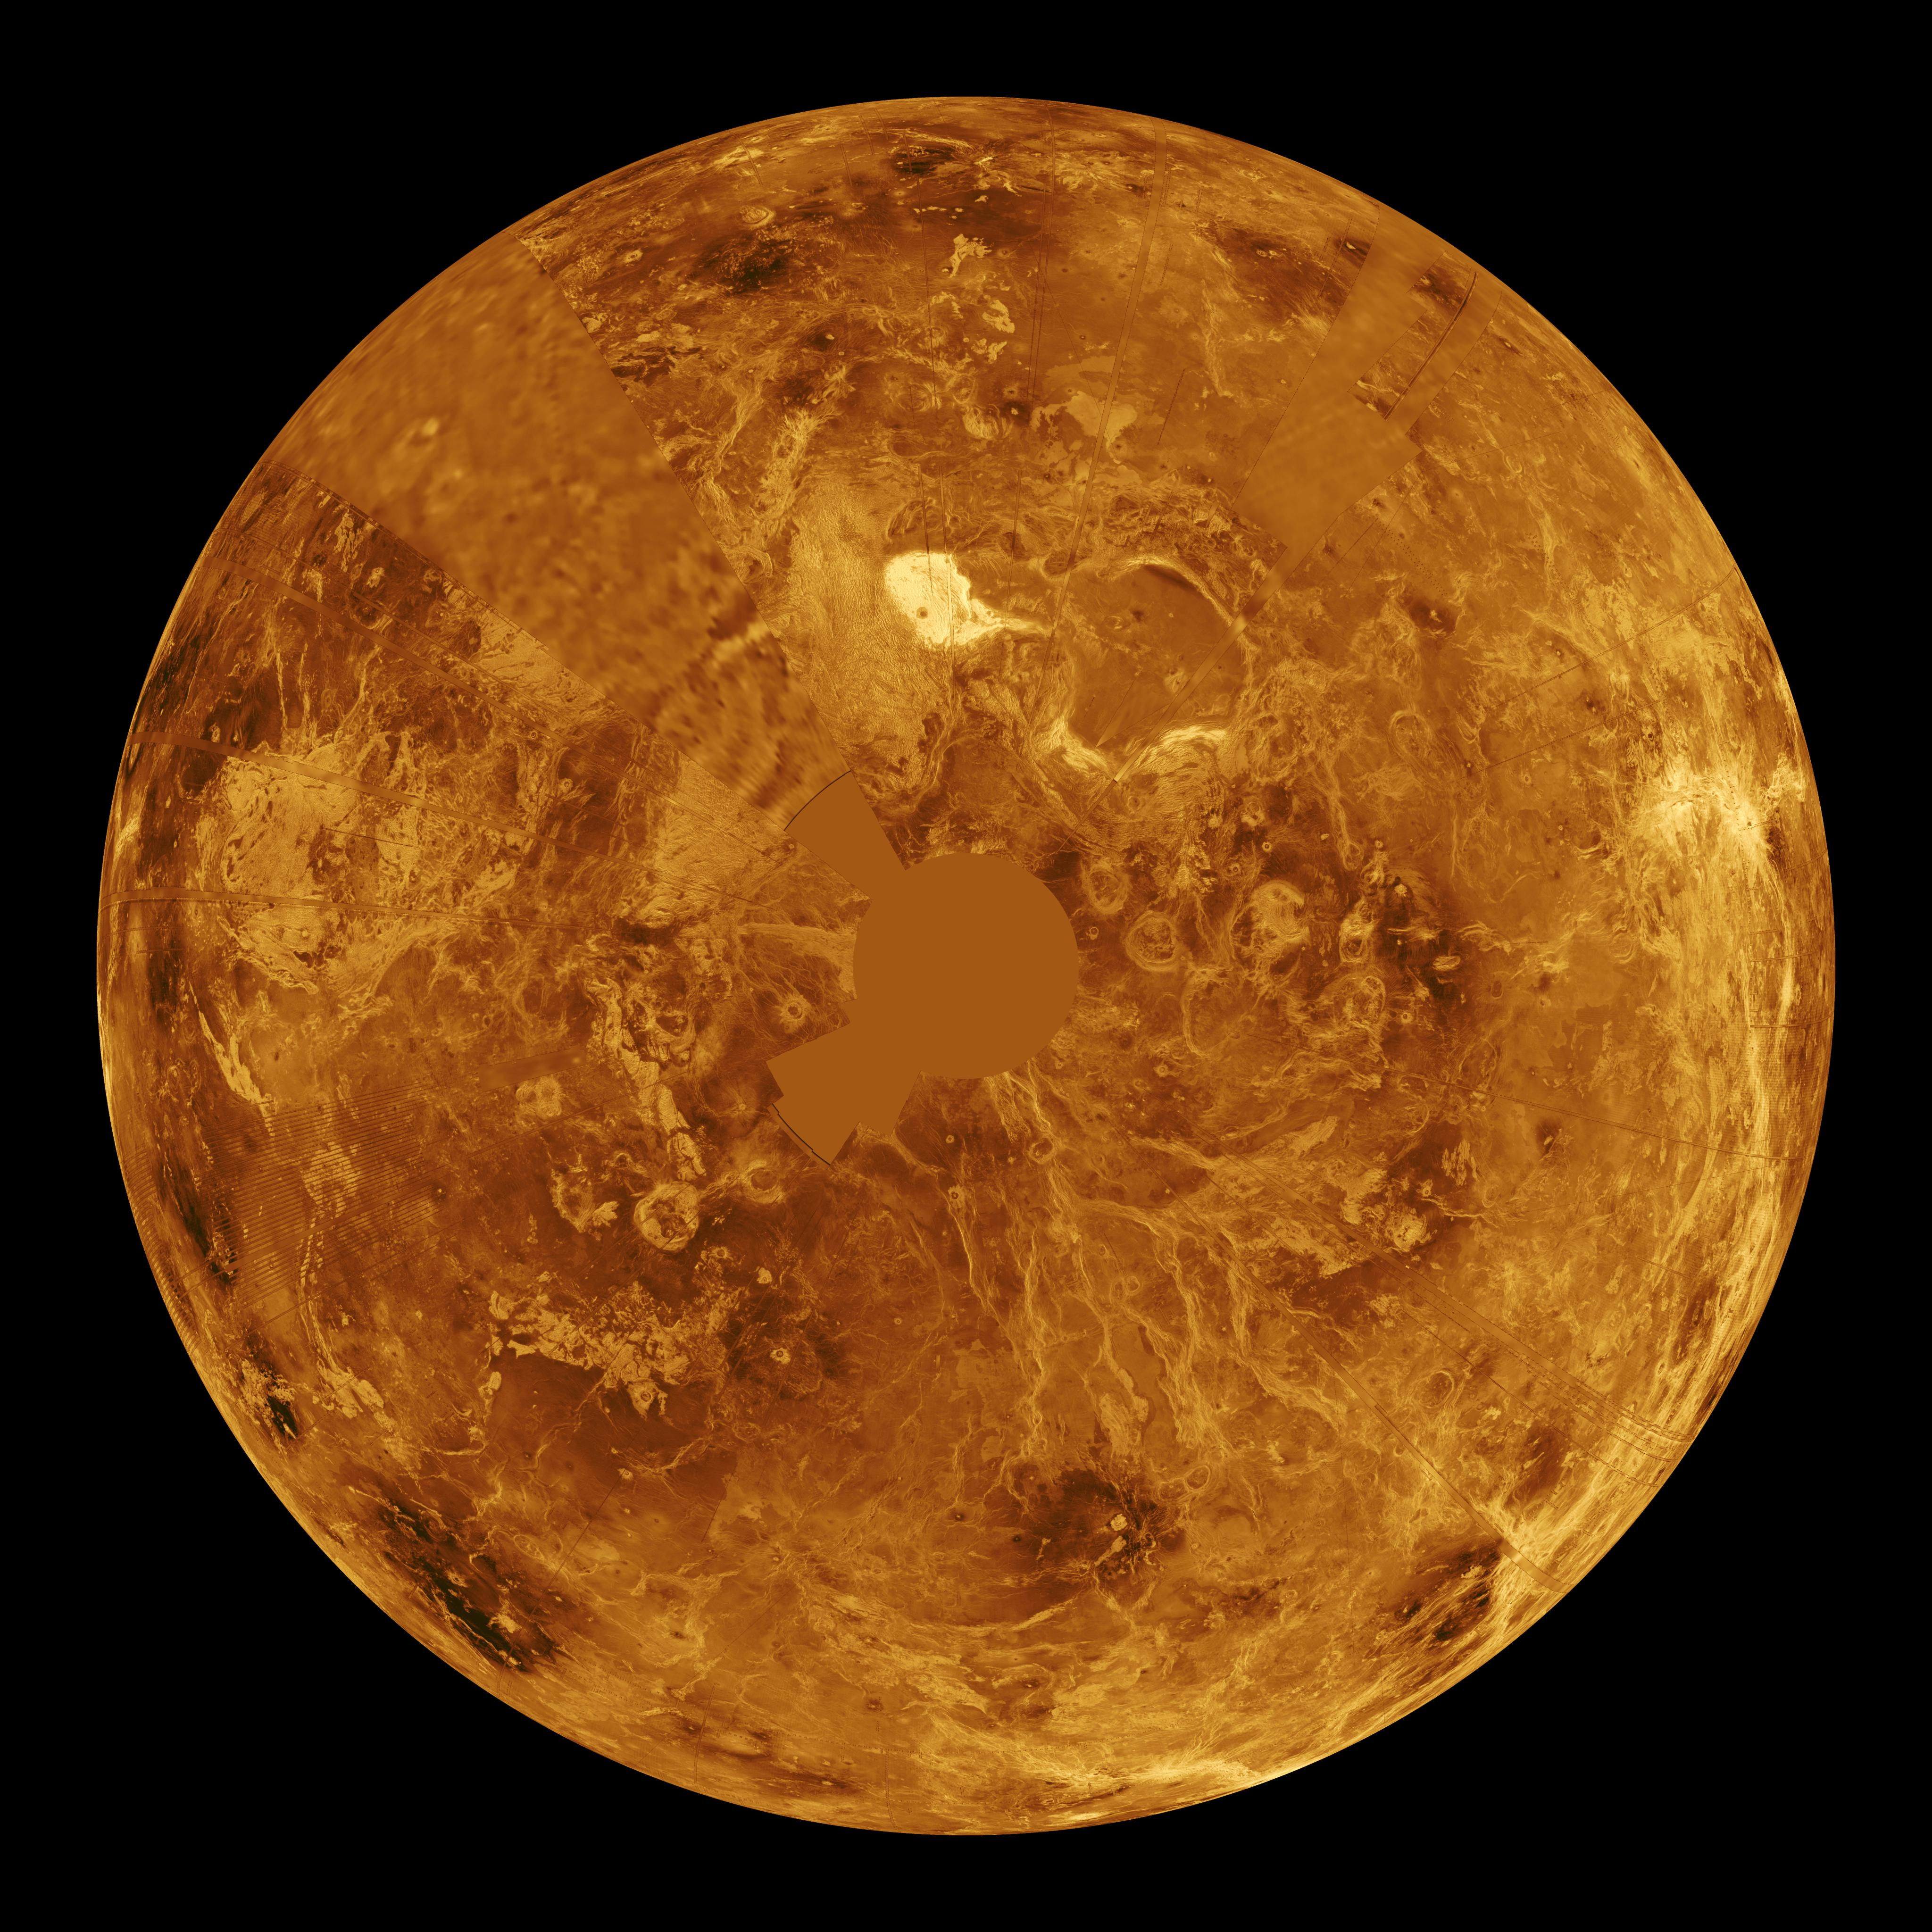 Space Images | Venus - Computer Simulated Global View of ...